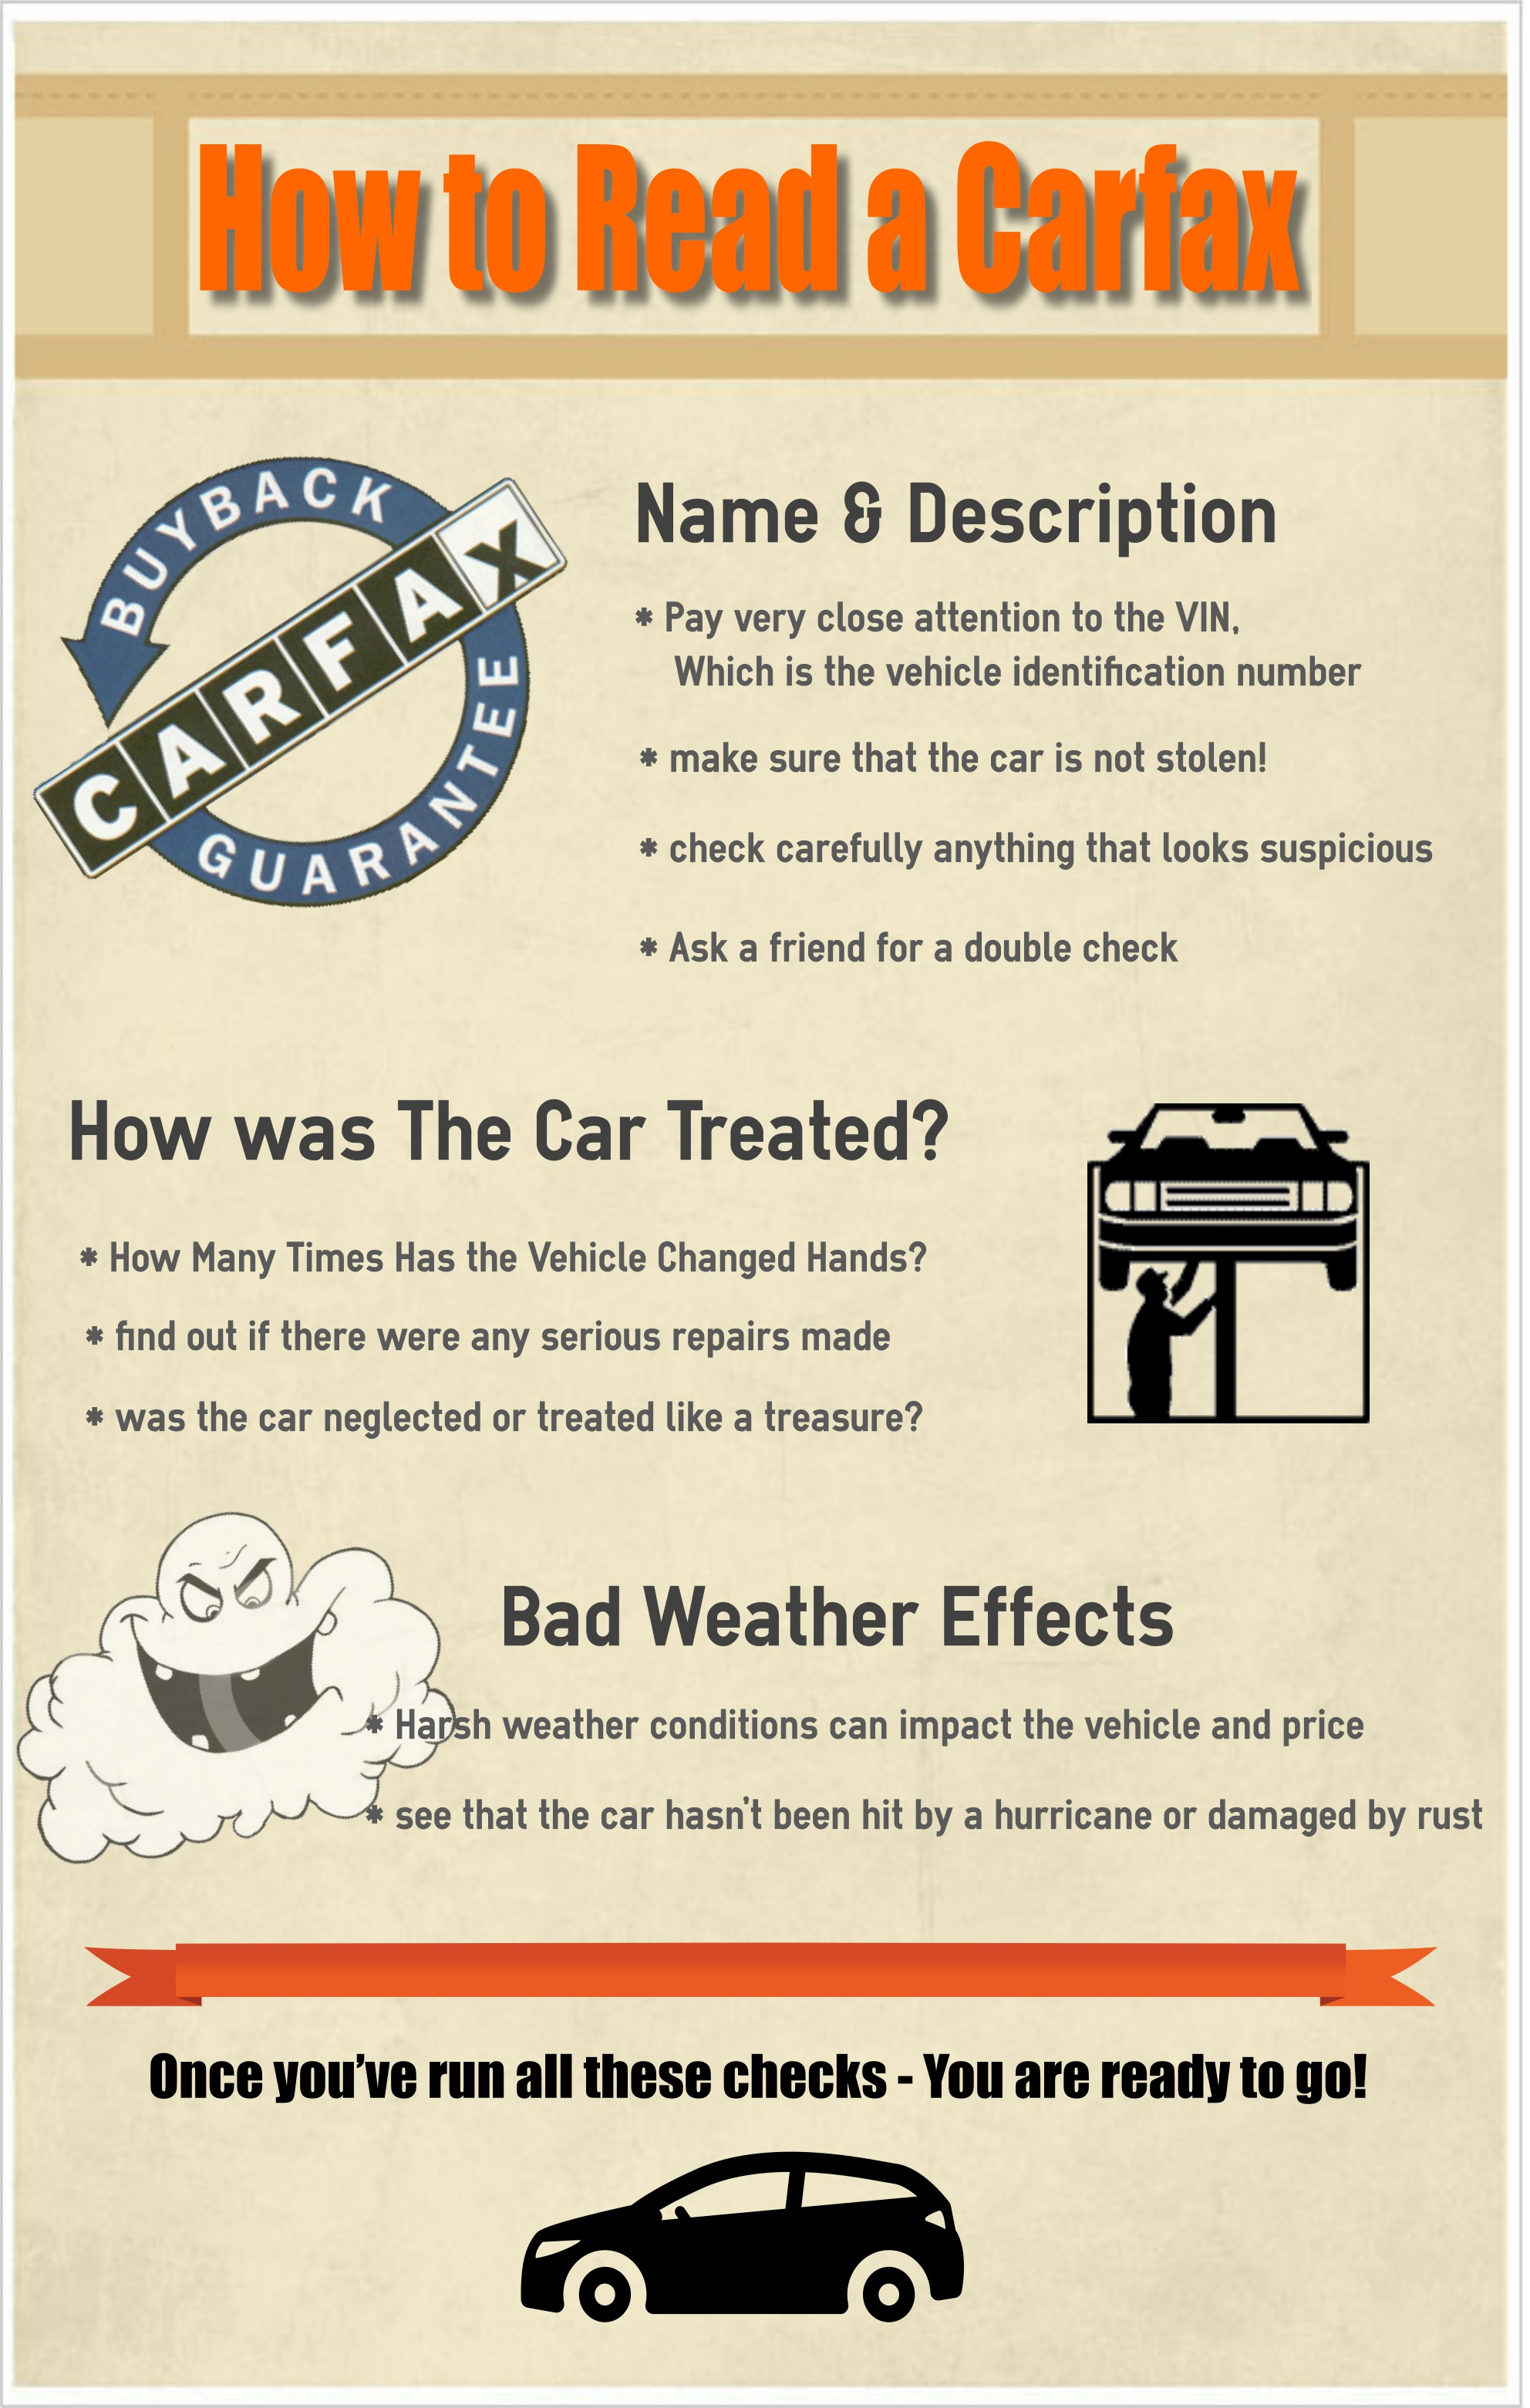 How to Read a Carfax